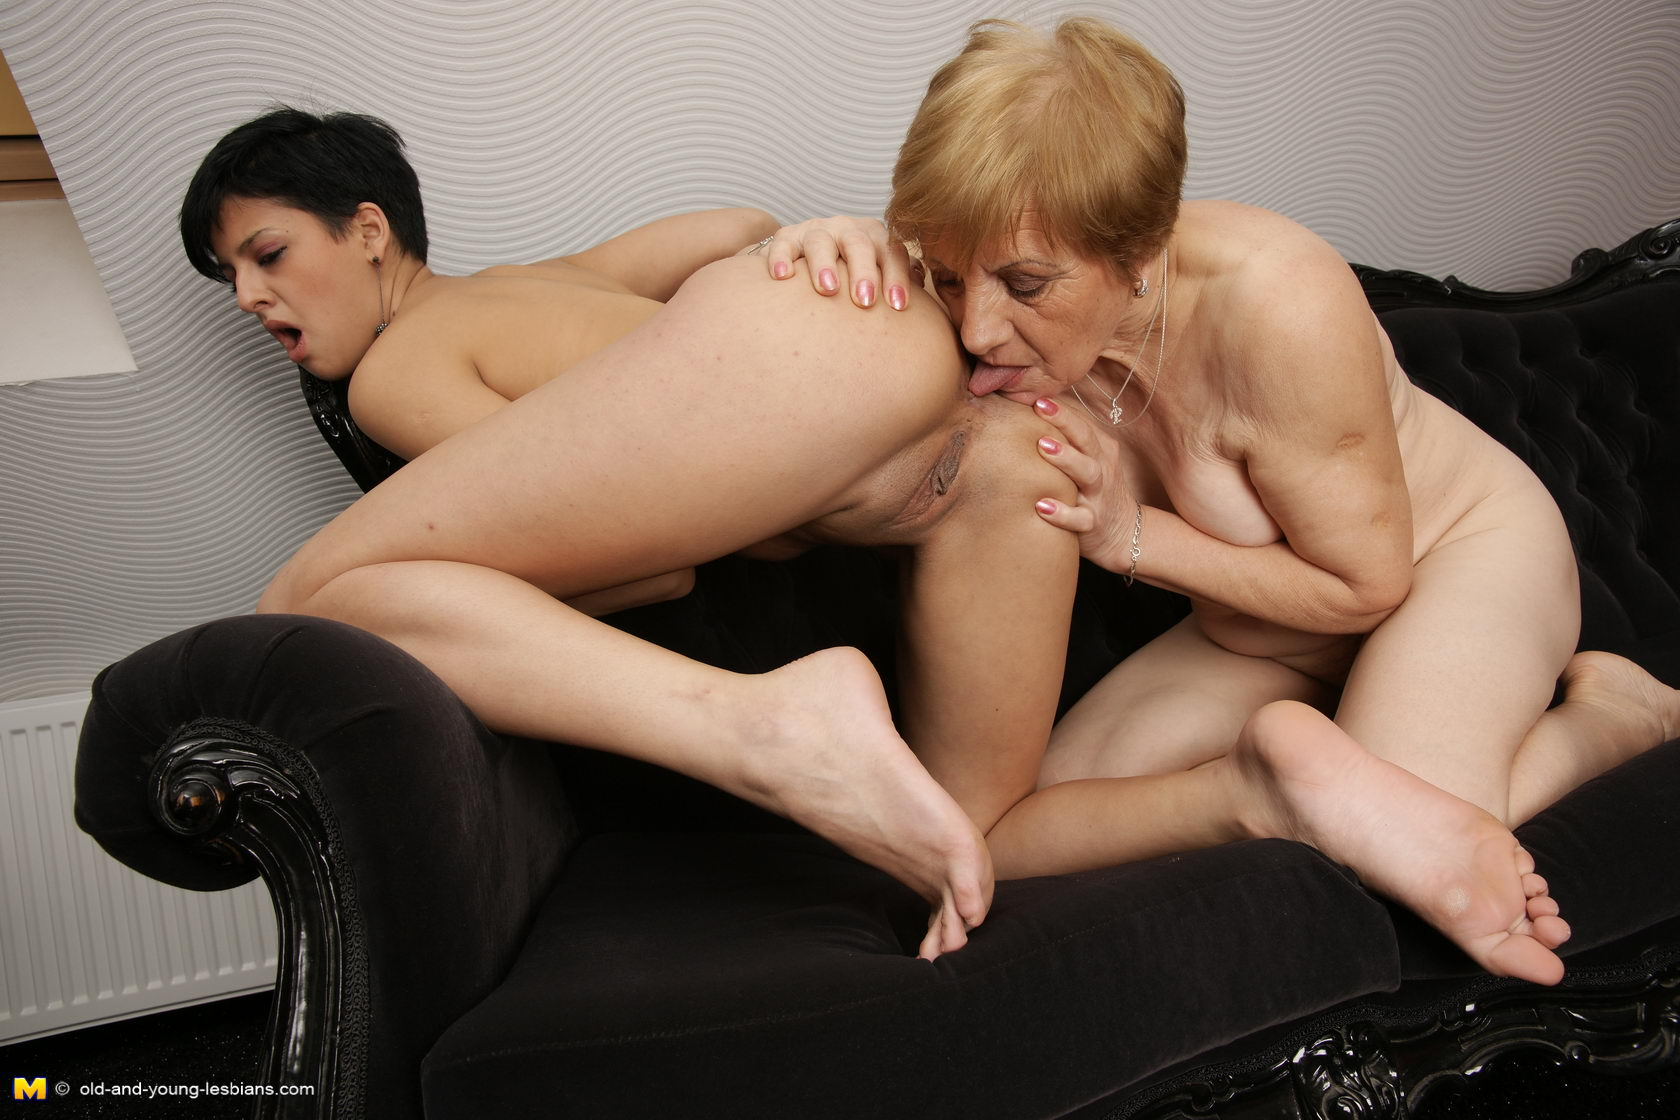 Porno old and young lesbian Pervert Lesbians